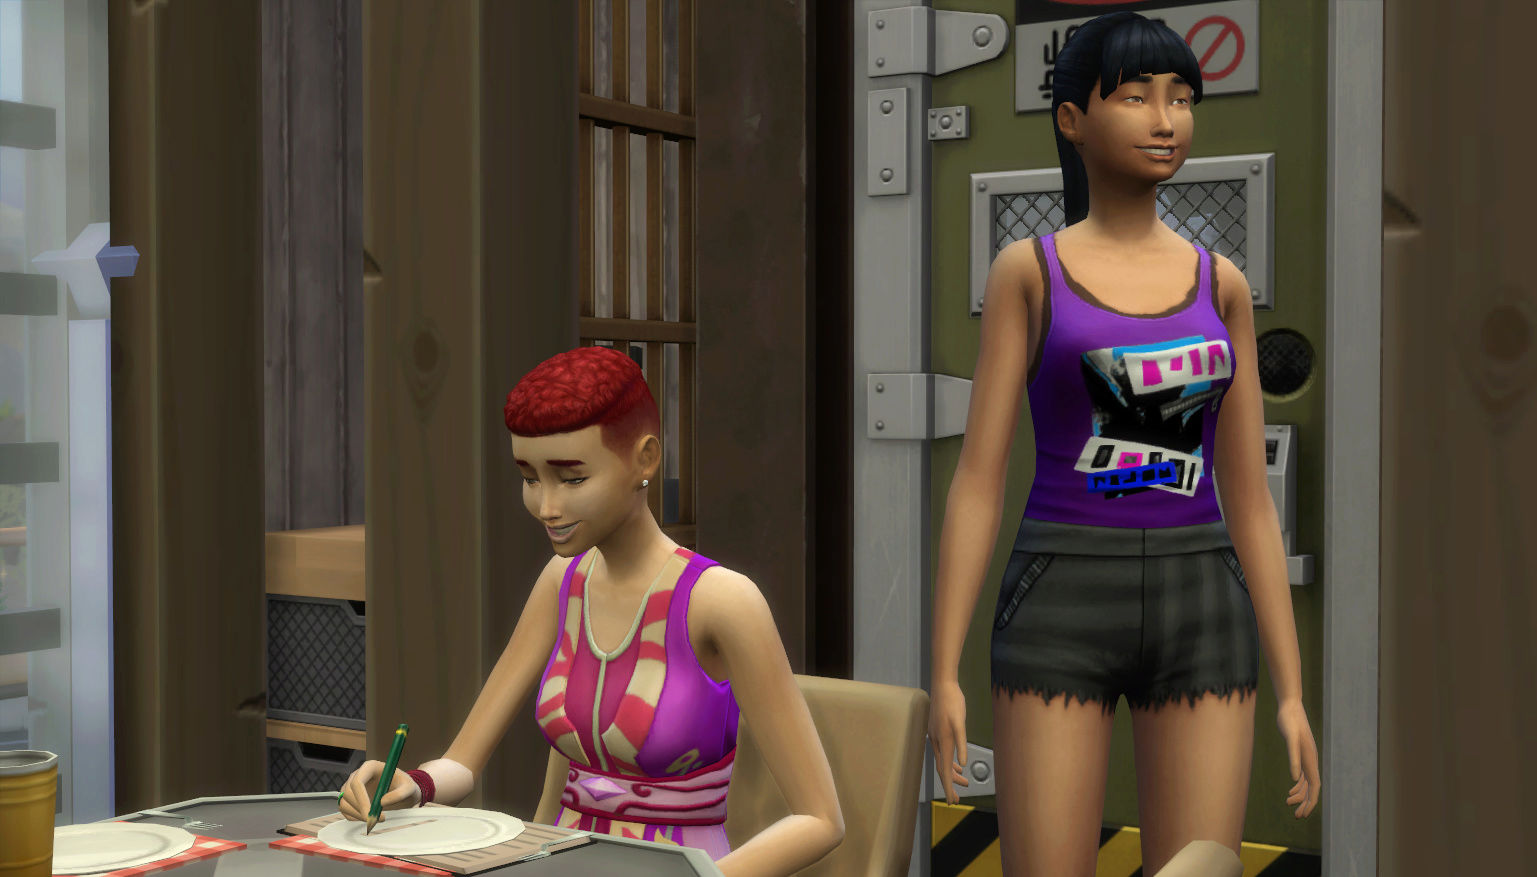 Caption This: Special Pictures That Need A Caption (All Sim Games) - Page 3 06-04-10